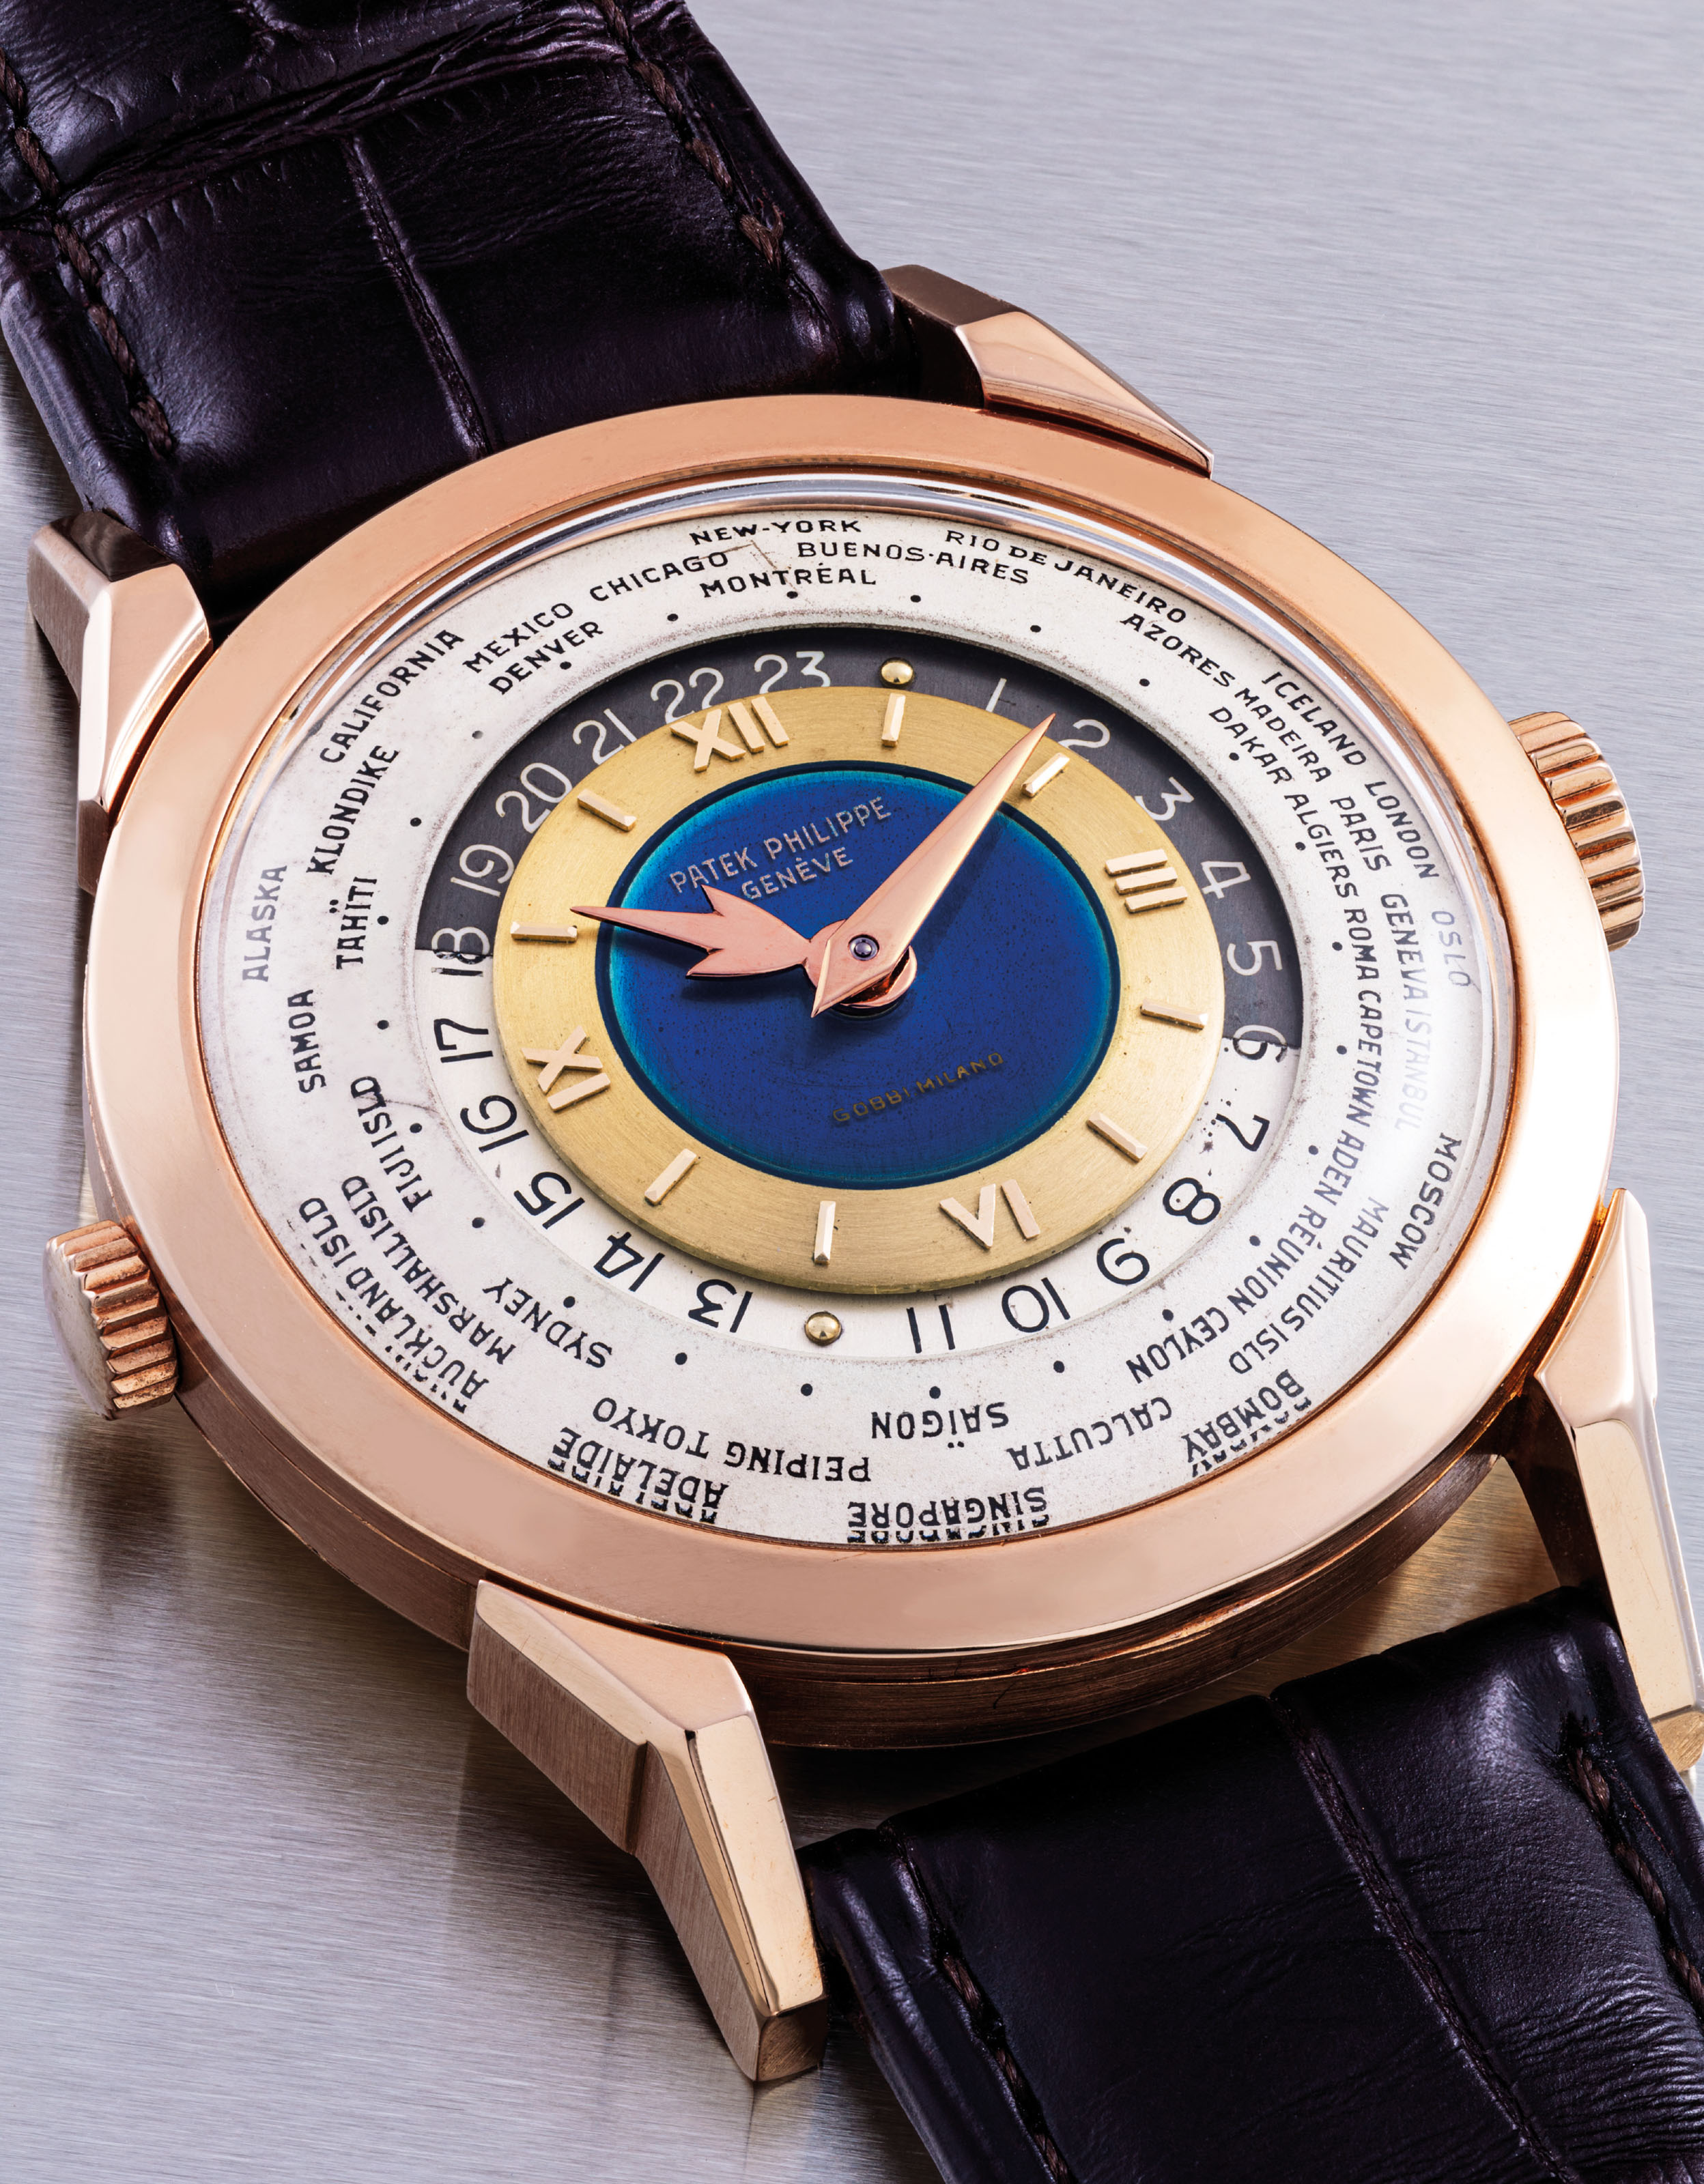 The Masterpiece Auction (23 Nov) / Important Watches including an Important Private Asian Collection Part One (27 Nov)